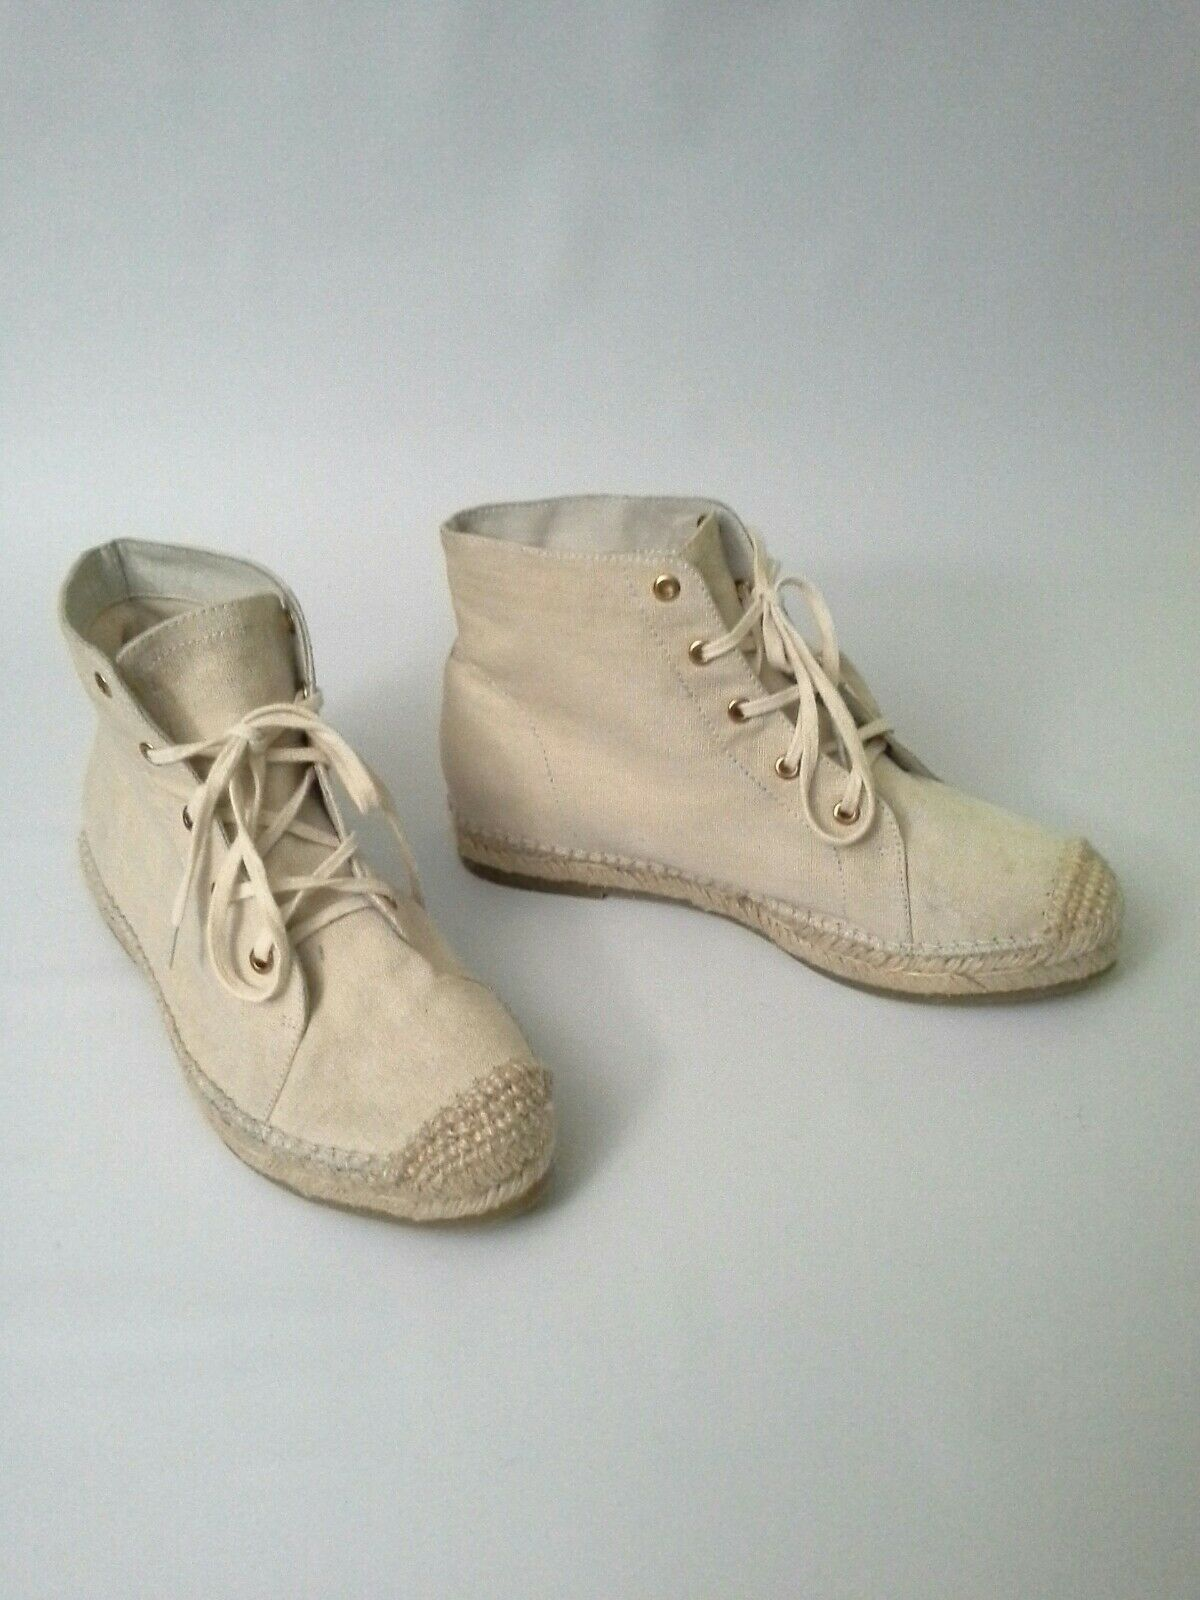 Anthropologie Echo High Tops Linen Espadrilles Sneakers Natural